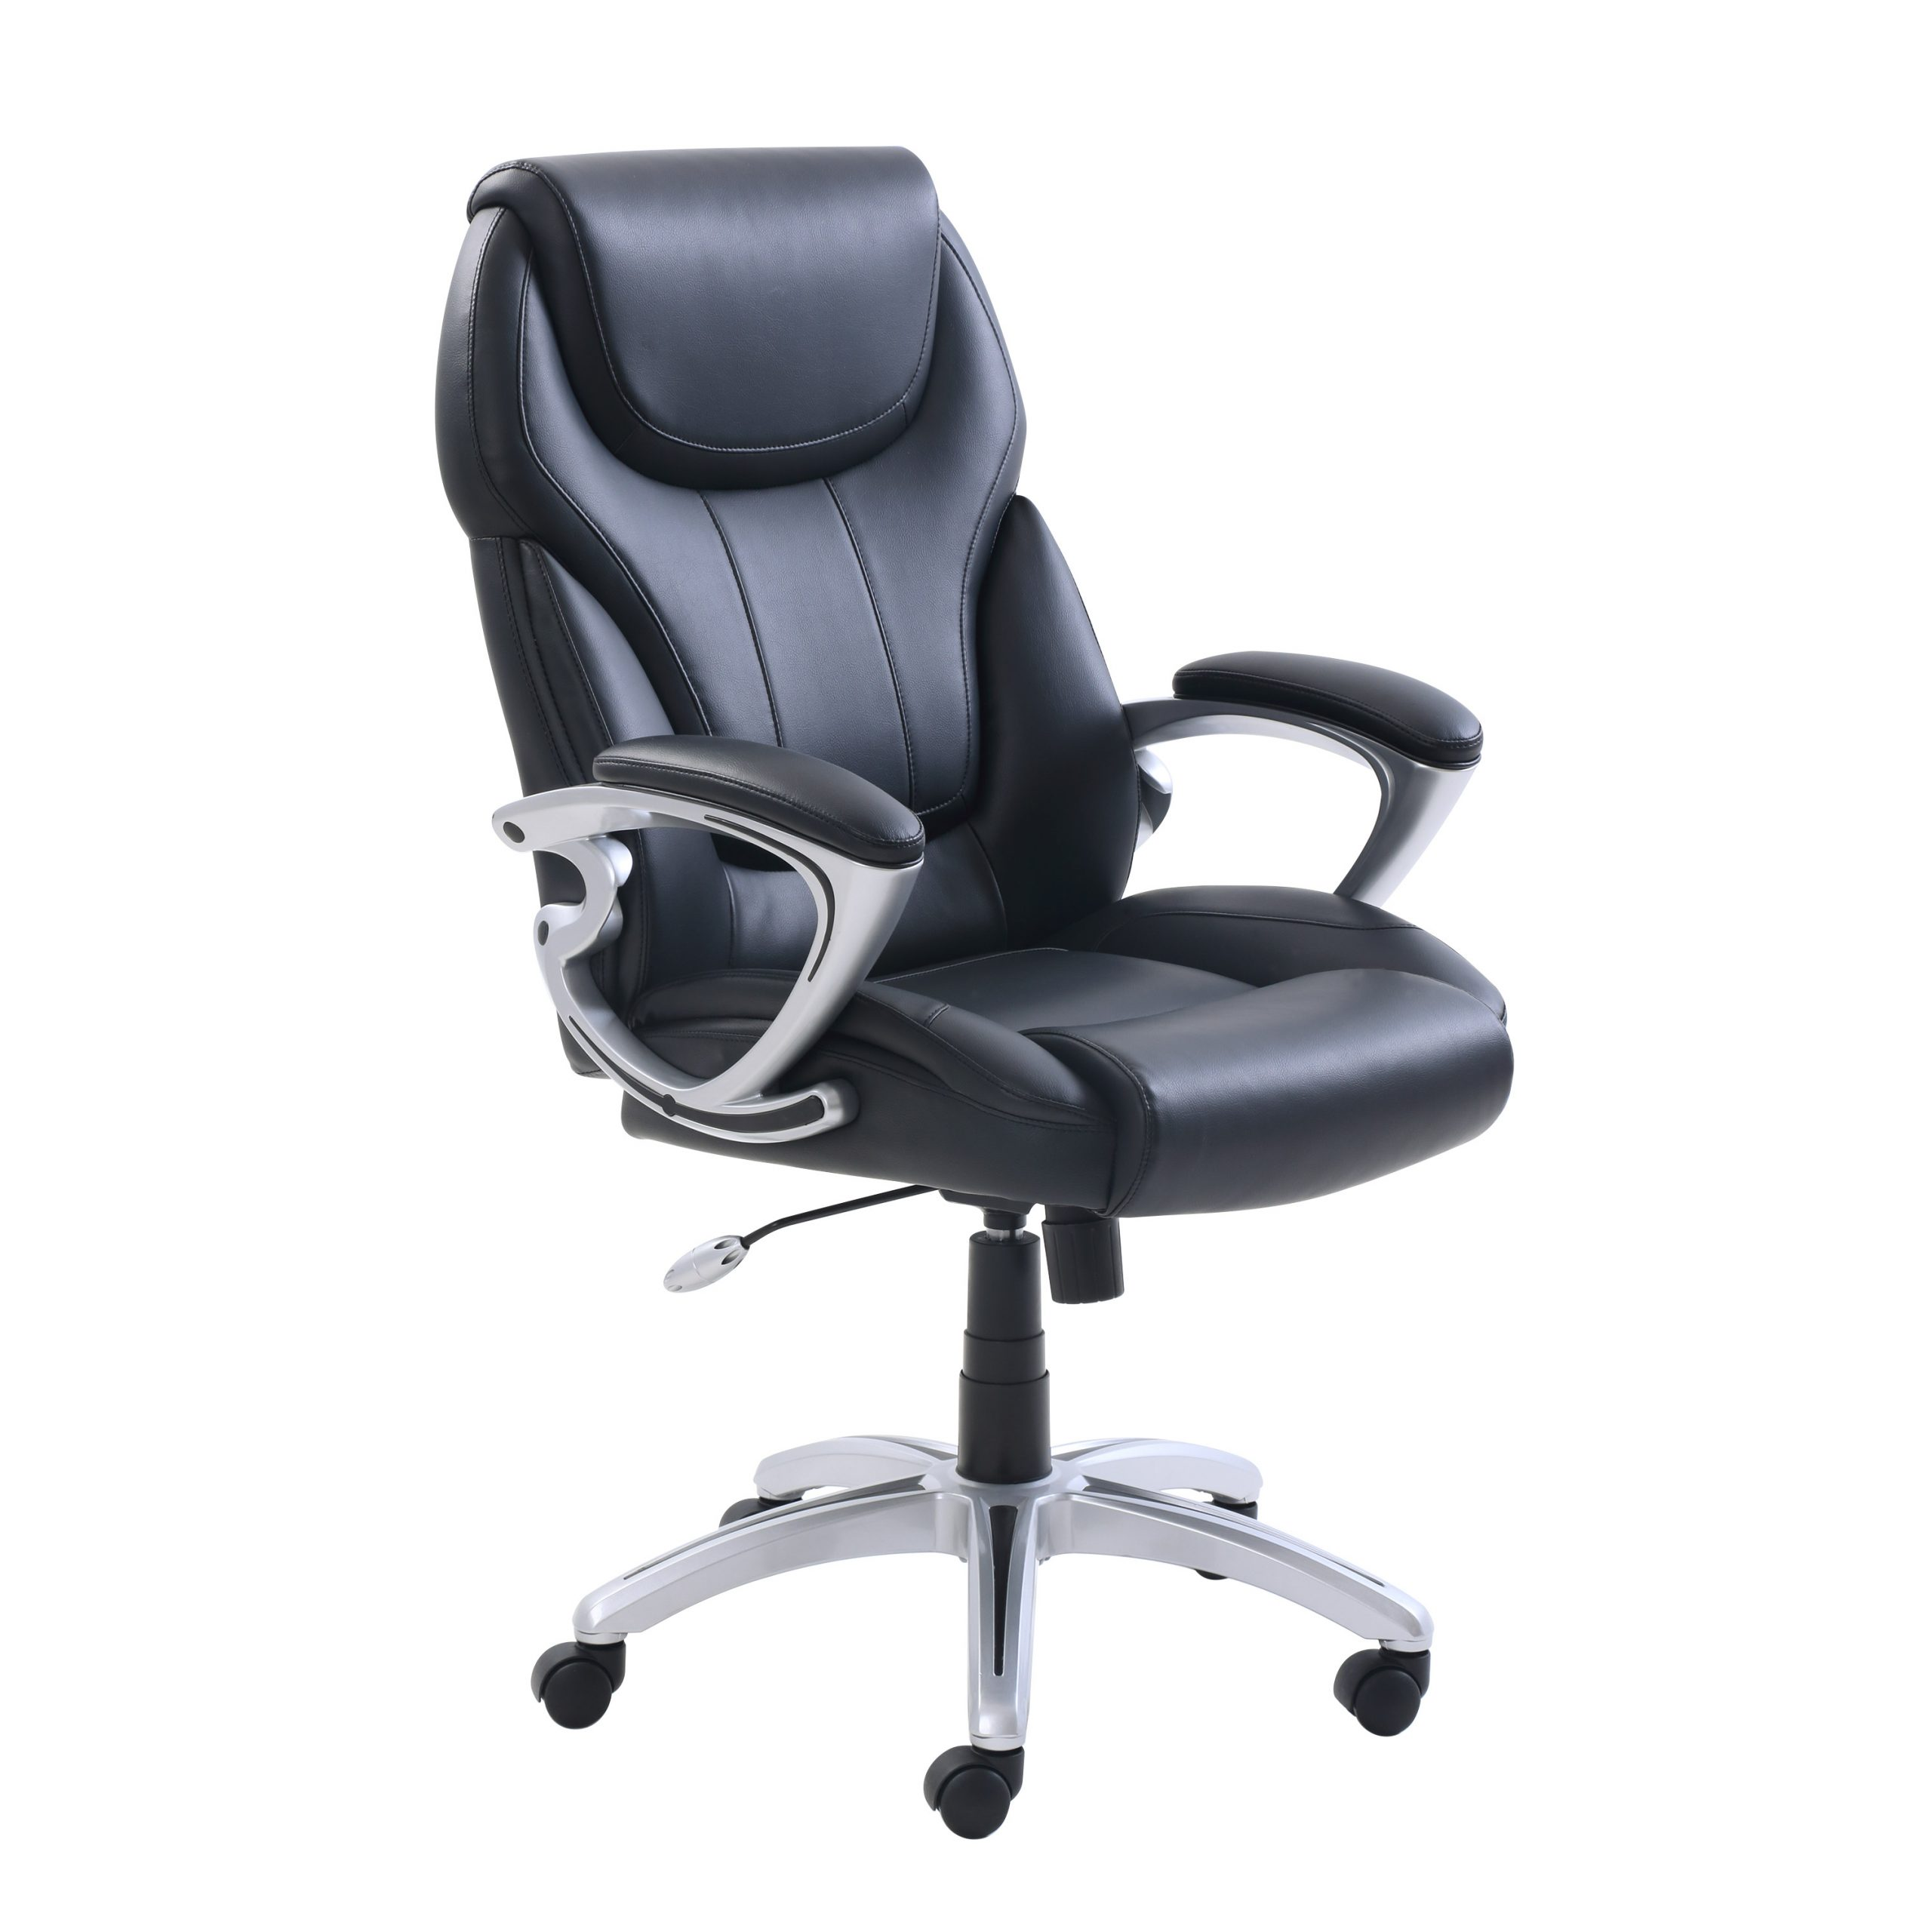 true magic back office manager's chair